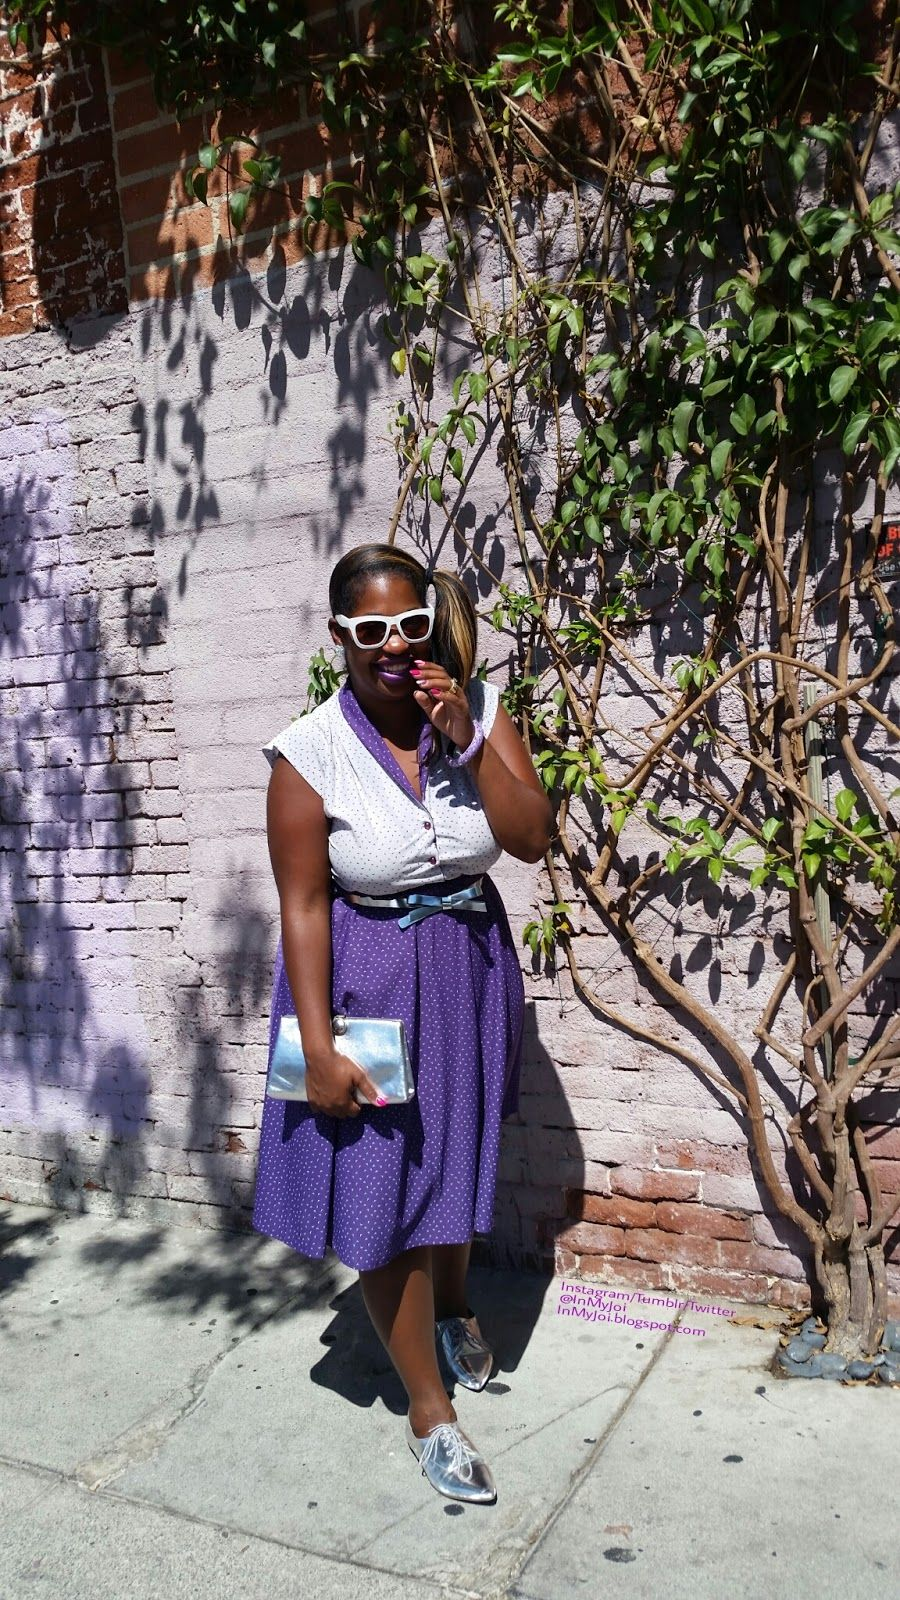 In My Joi: #thriftstorescore #thrifted #vintagedress #vintagebag #oxfords #psblogger #blogger